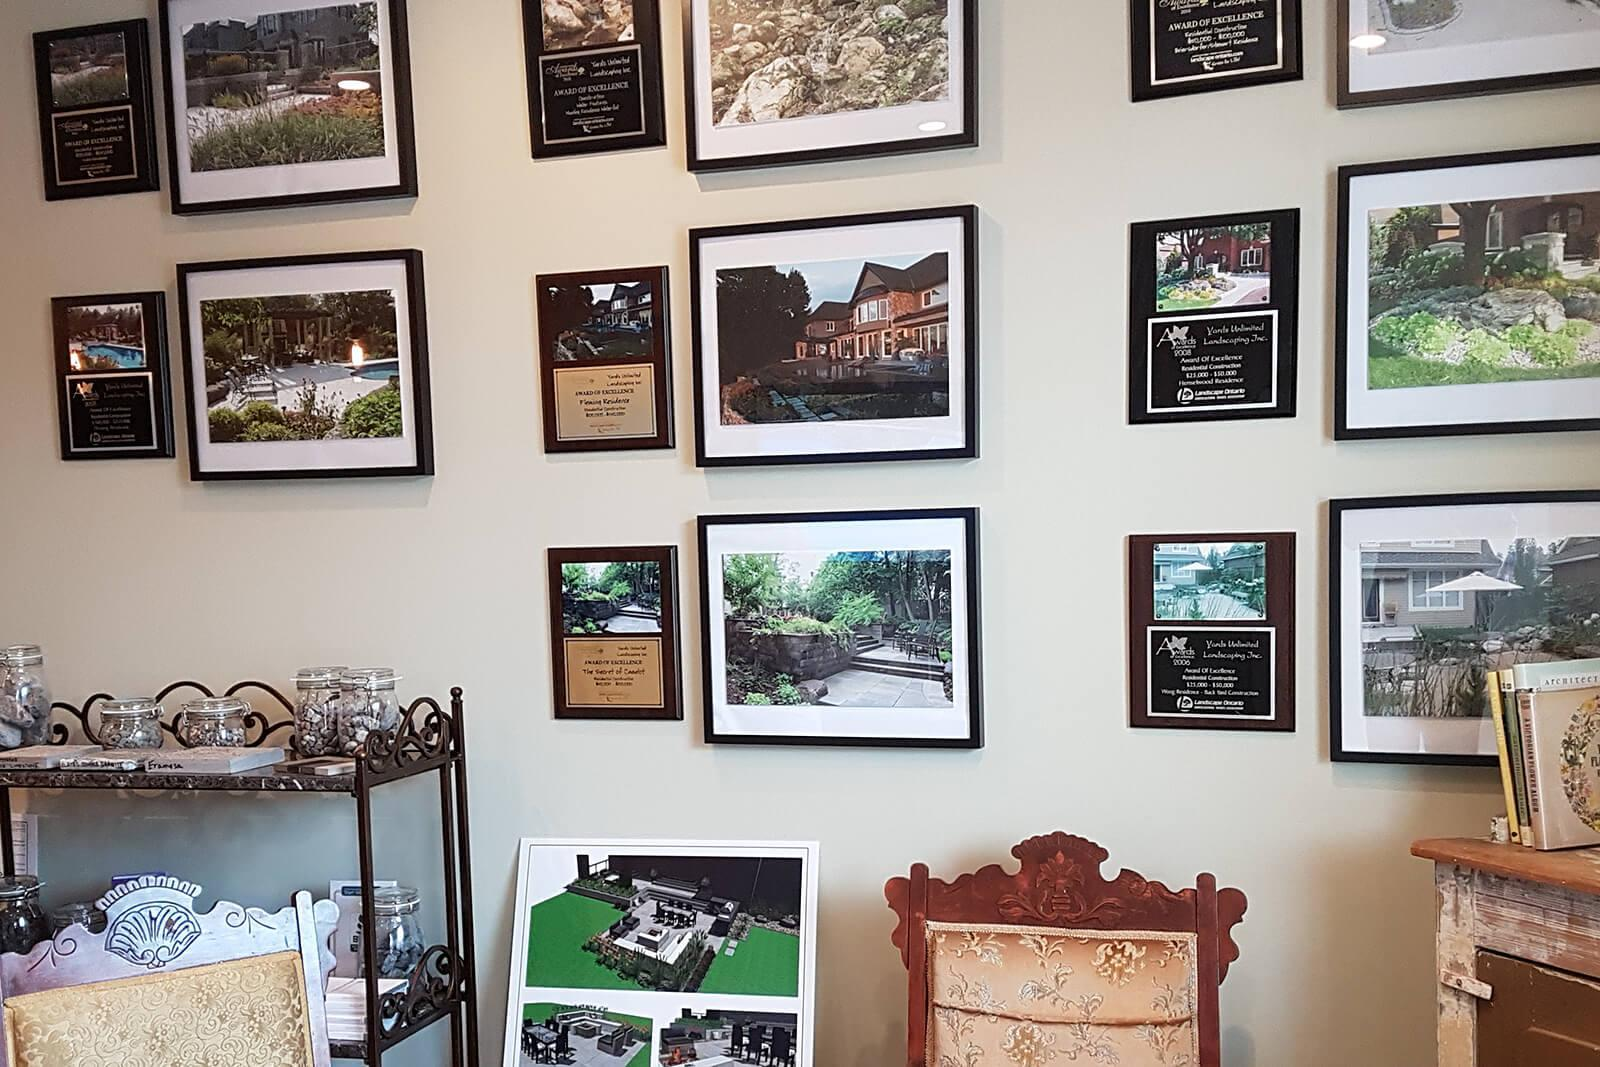 Yards Unlimited Landscaping proudly displays LO Awards plaques in its studio.